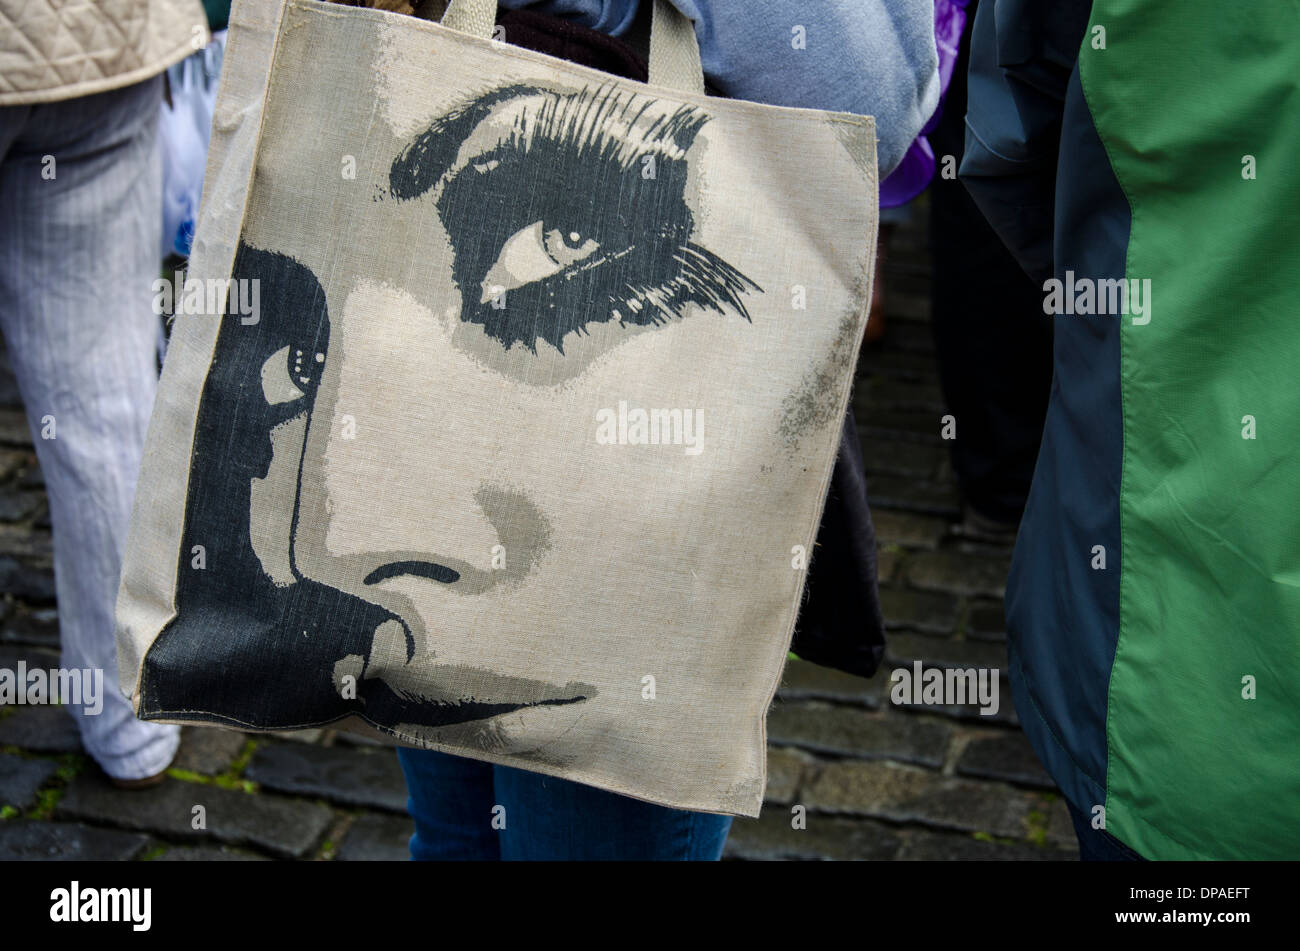 Drawing of a young woman's face on a reusable shopping bag. - Stock Image